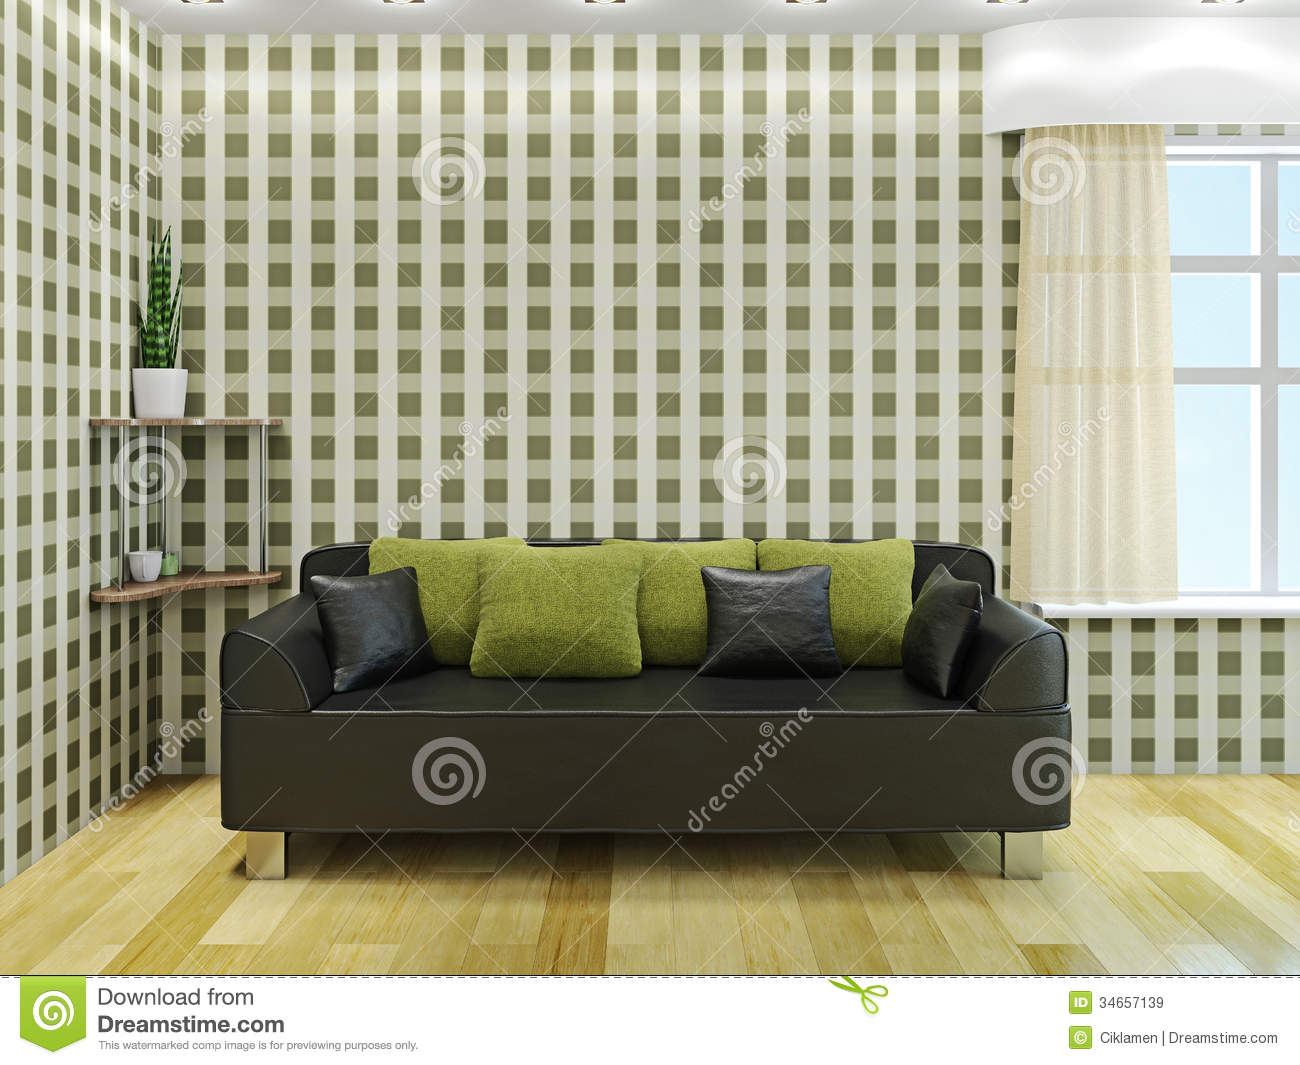 sofa mit gr nen kissen lizenzfreie stockbilder bild. Black Bedroom Furniture Sets. Home Design Ideas